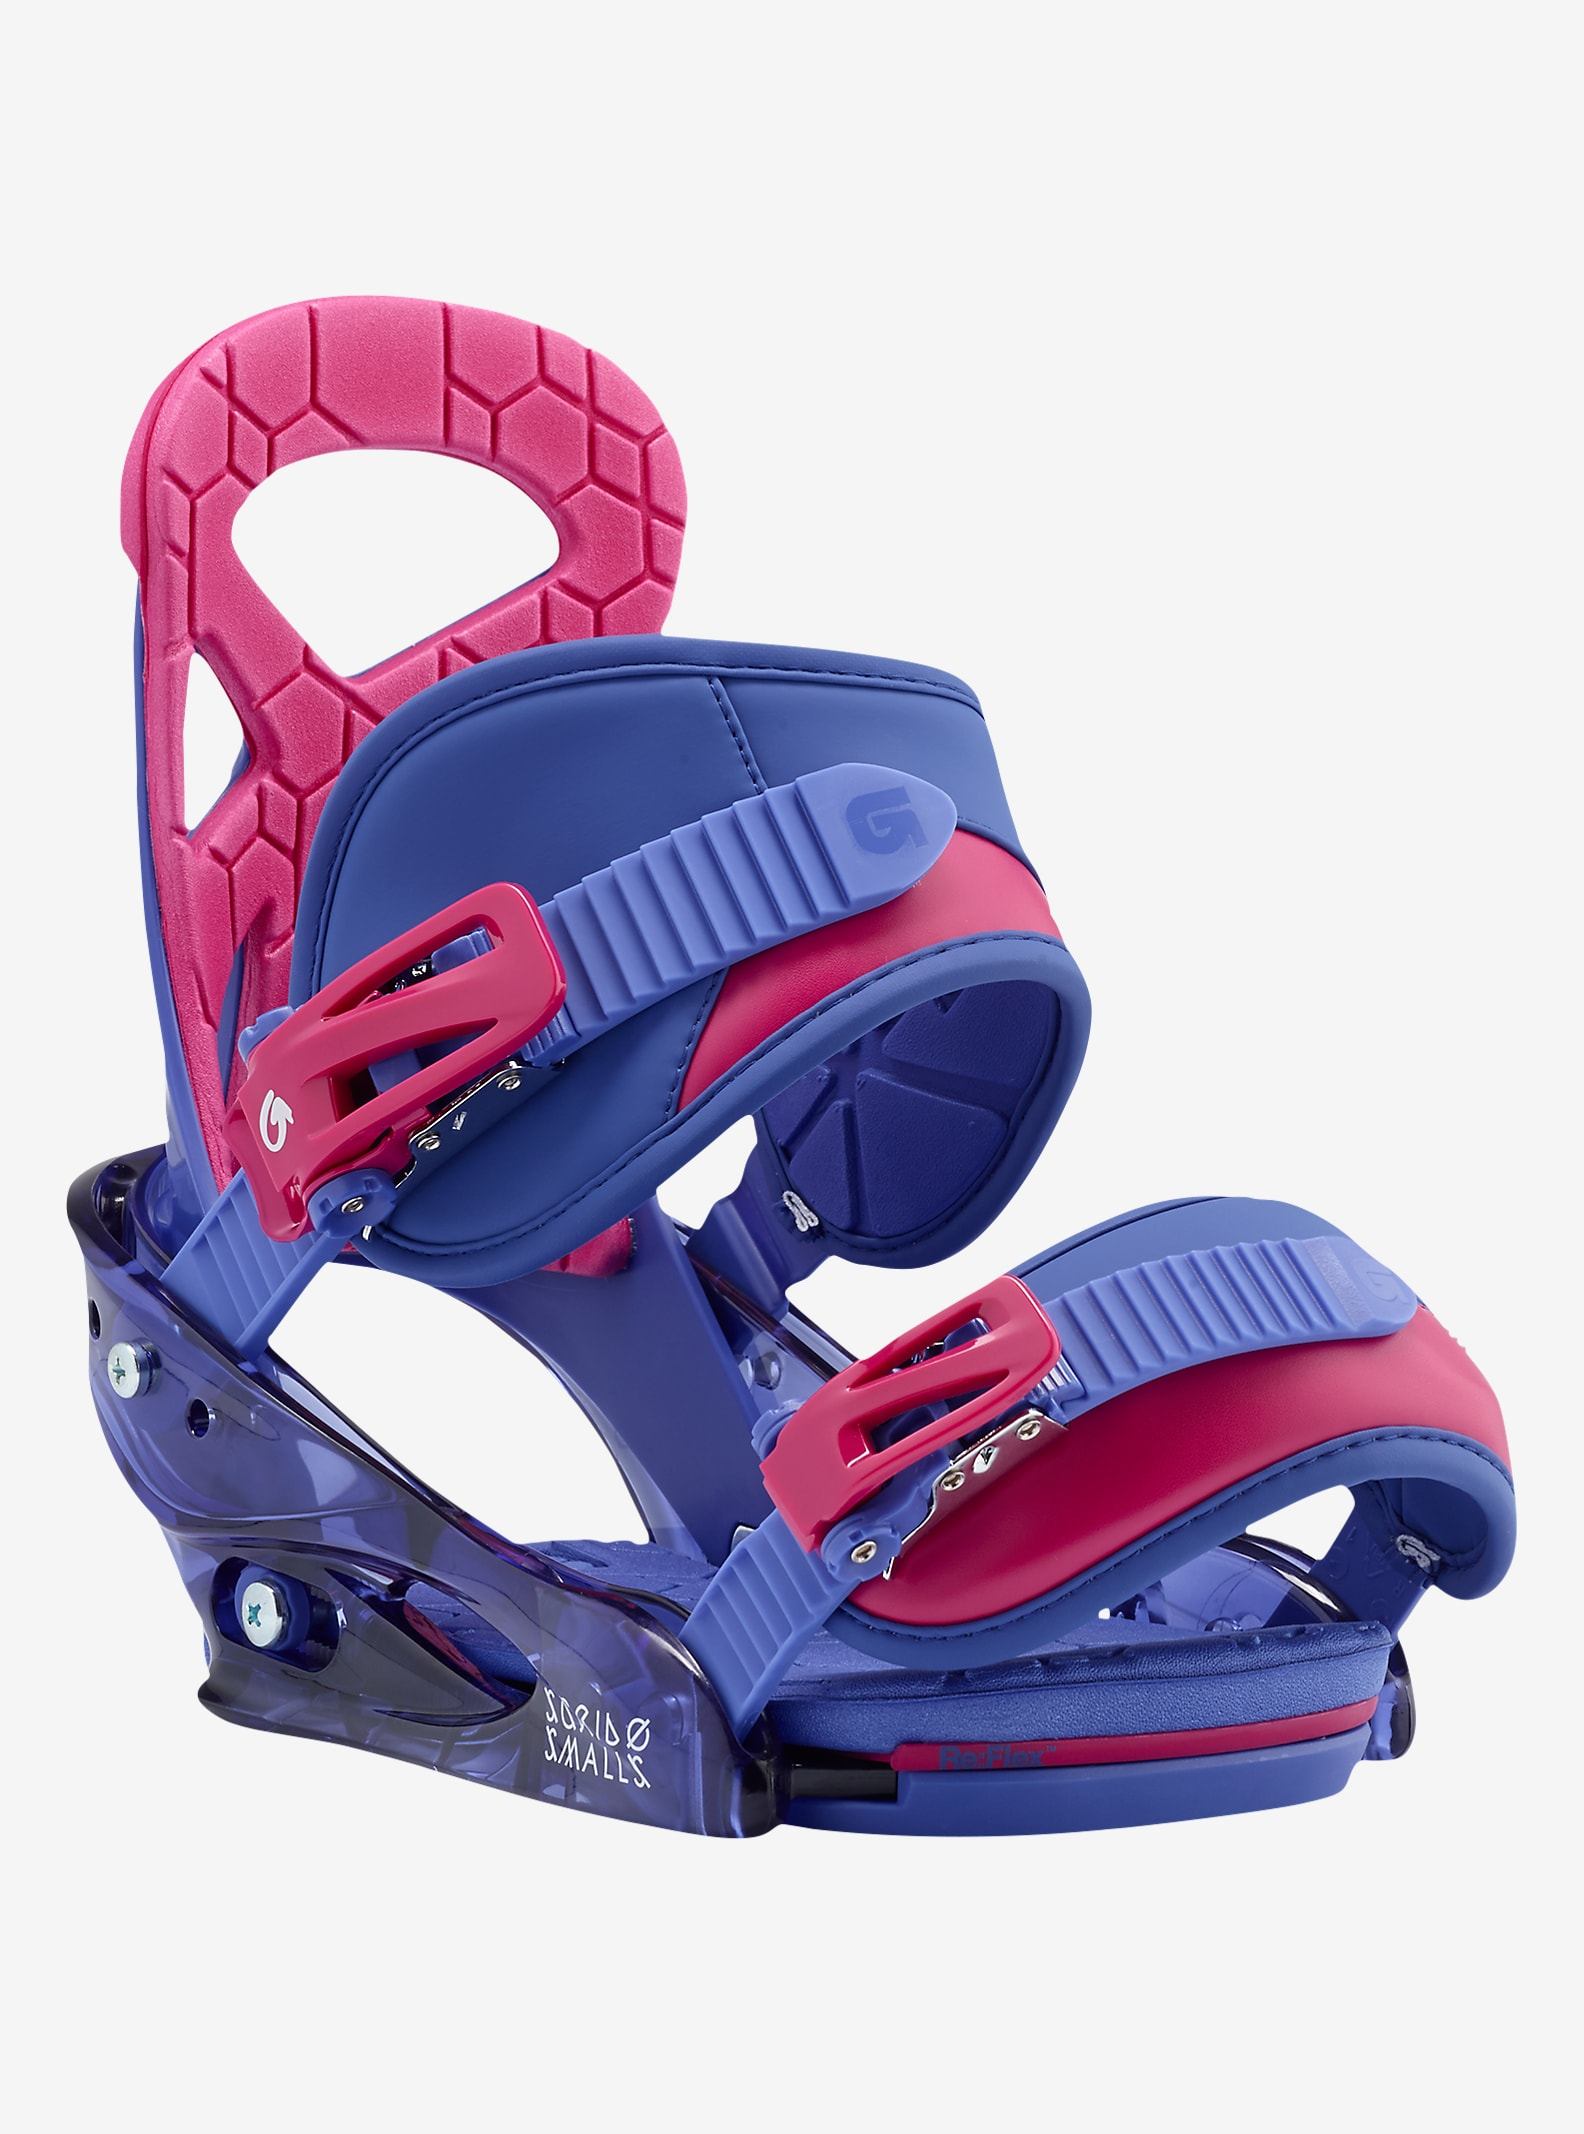 Burton Scribe Smalls Snowboard Binding shown in Deja Blue